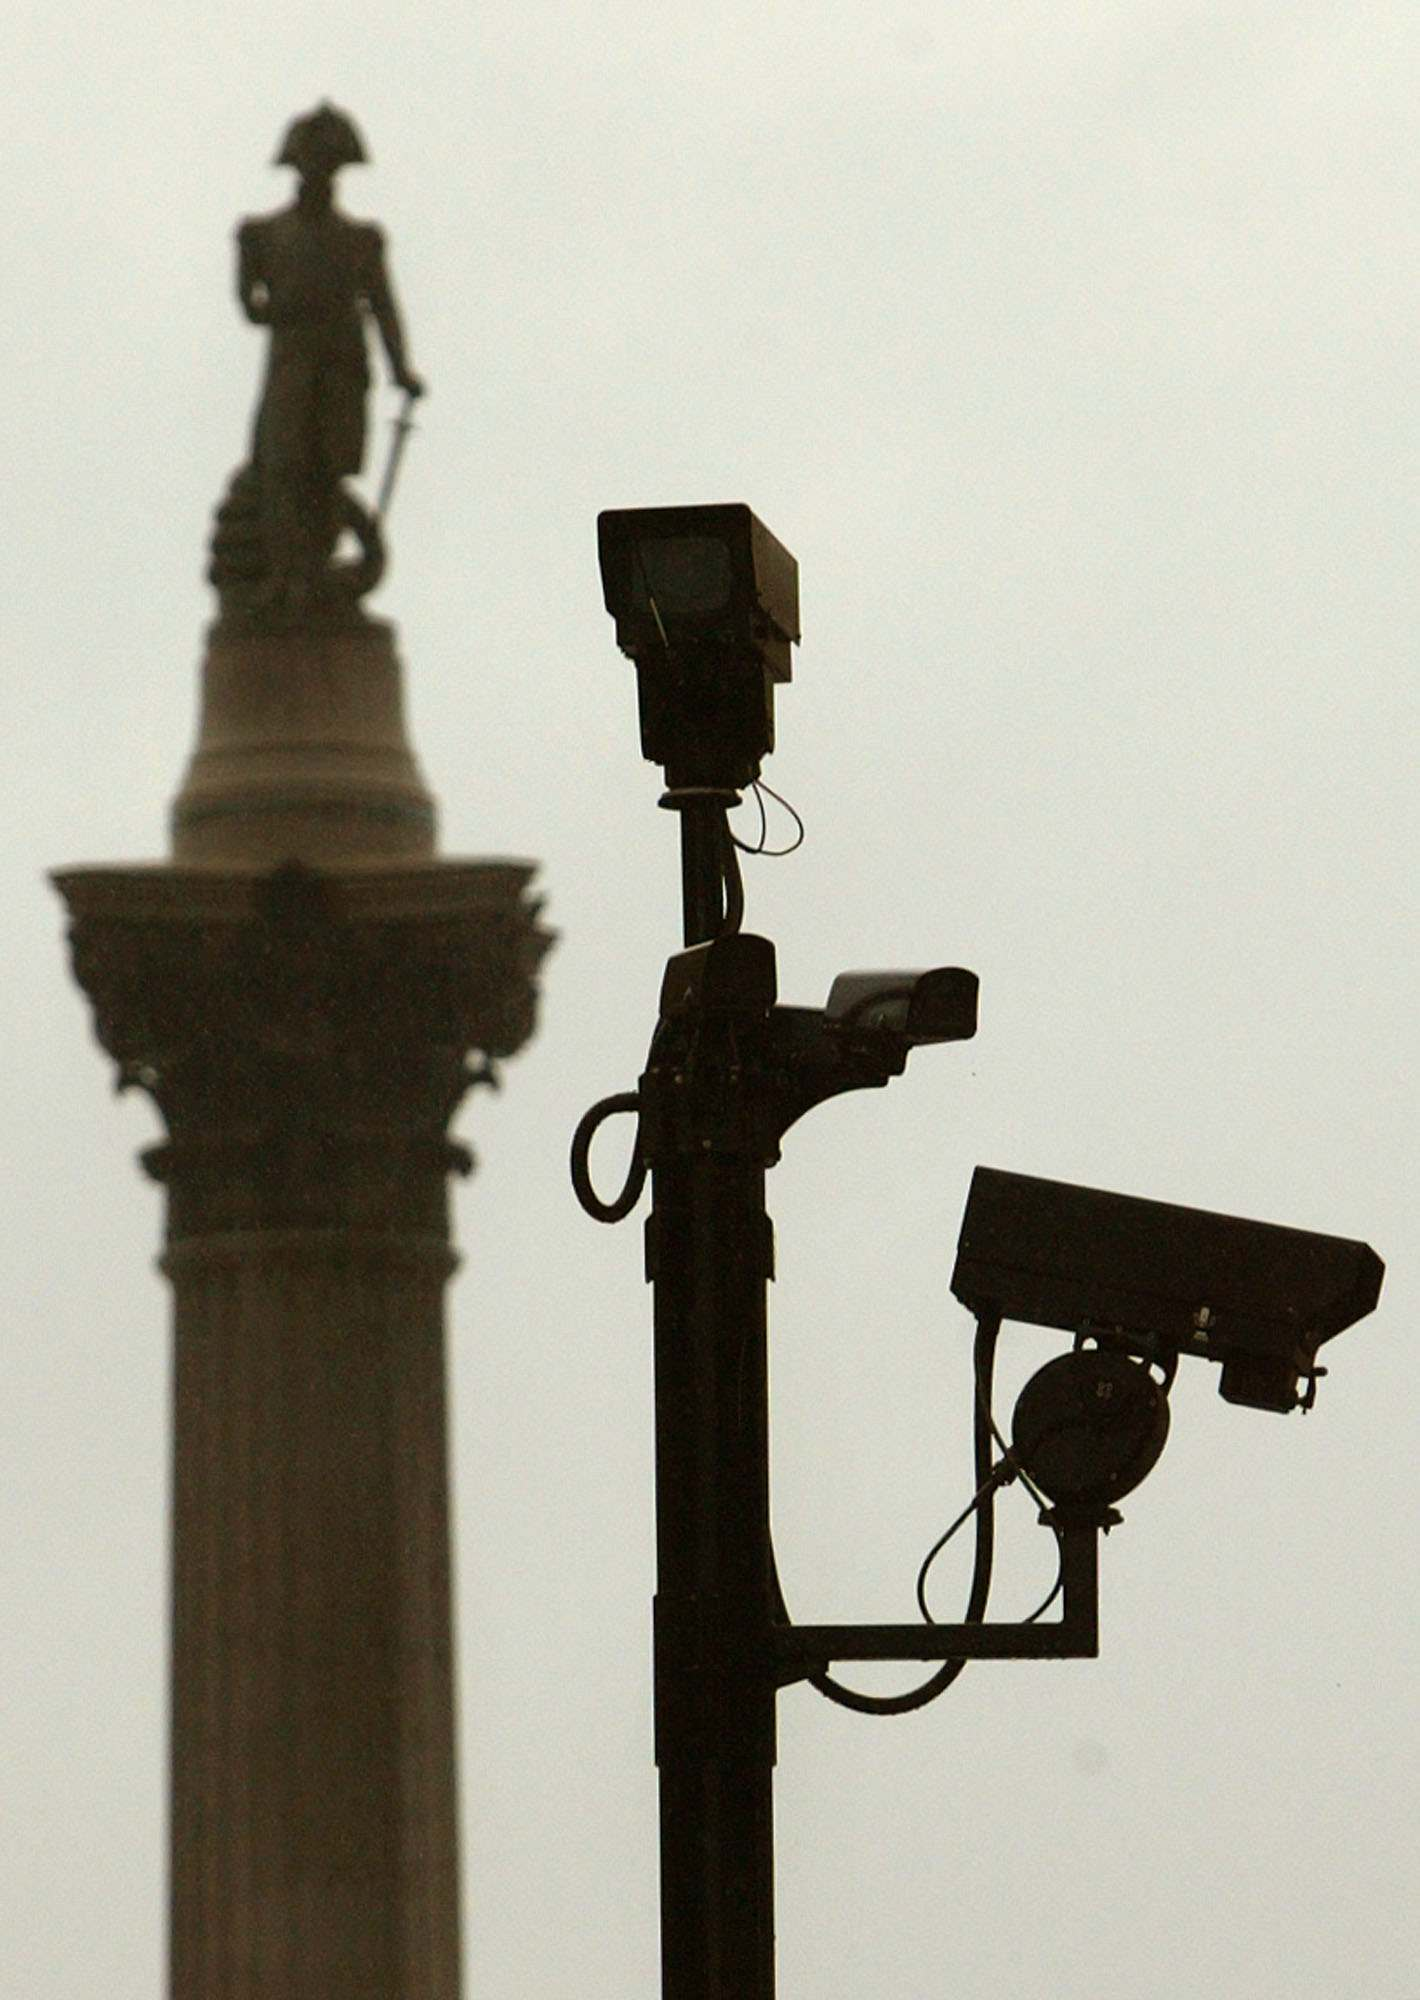 Security cameras survey London's Trafalgar Square.